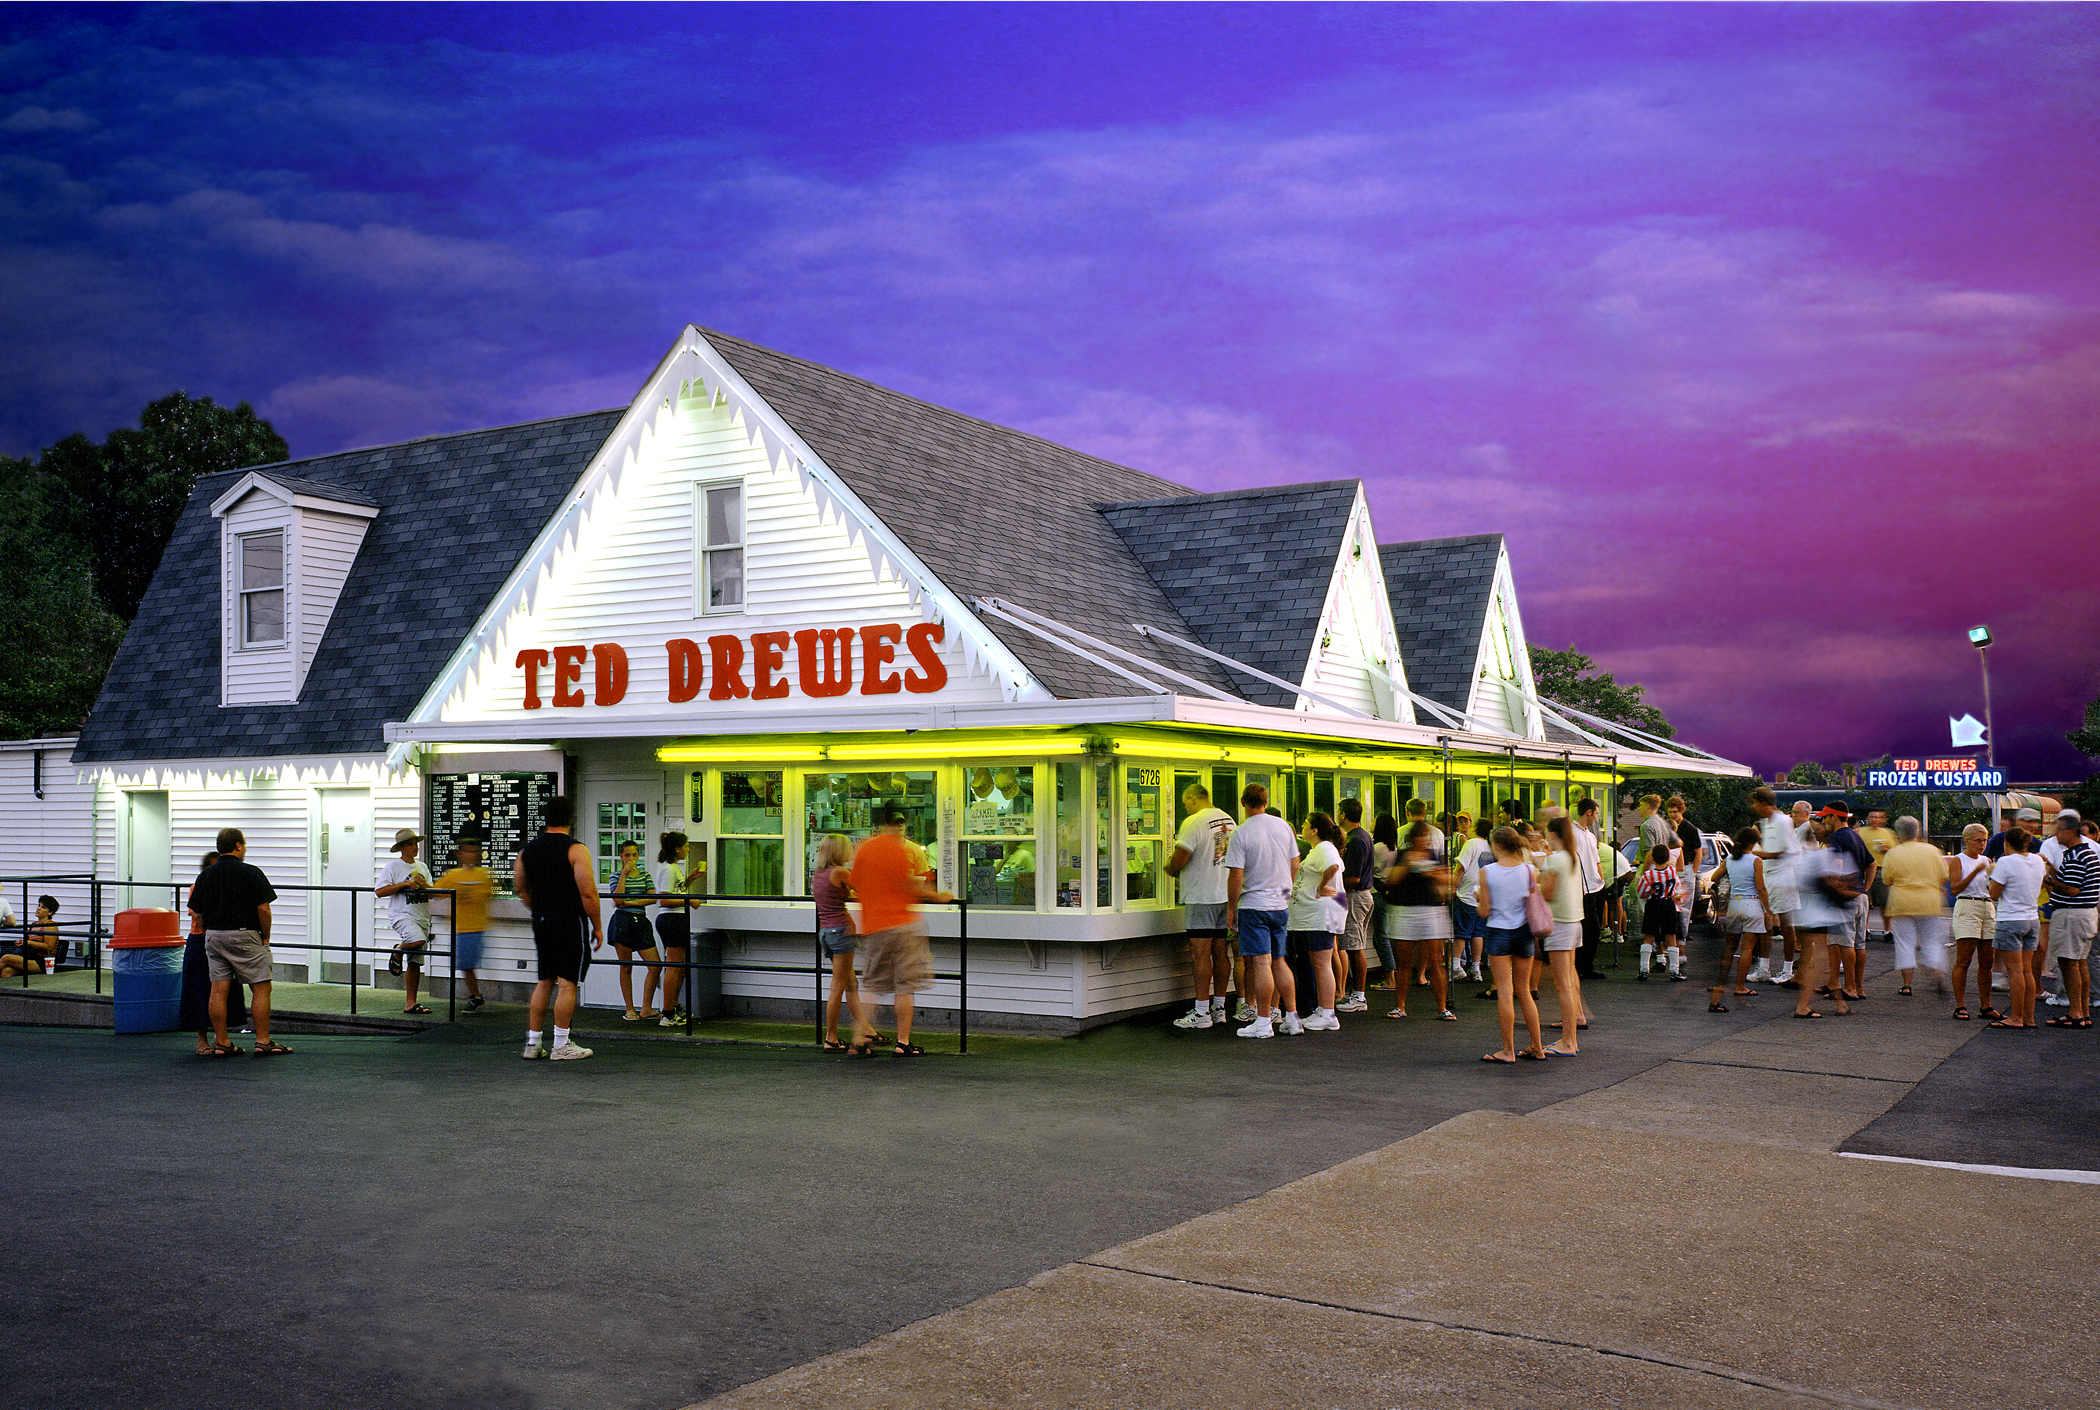 photos_St_Louis_Ted_Drewes